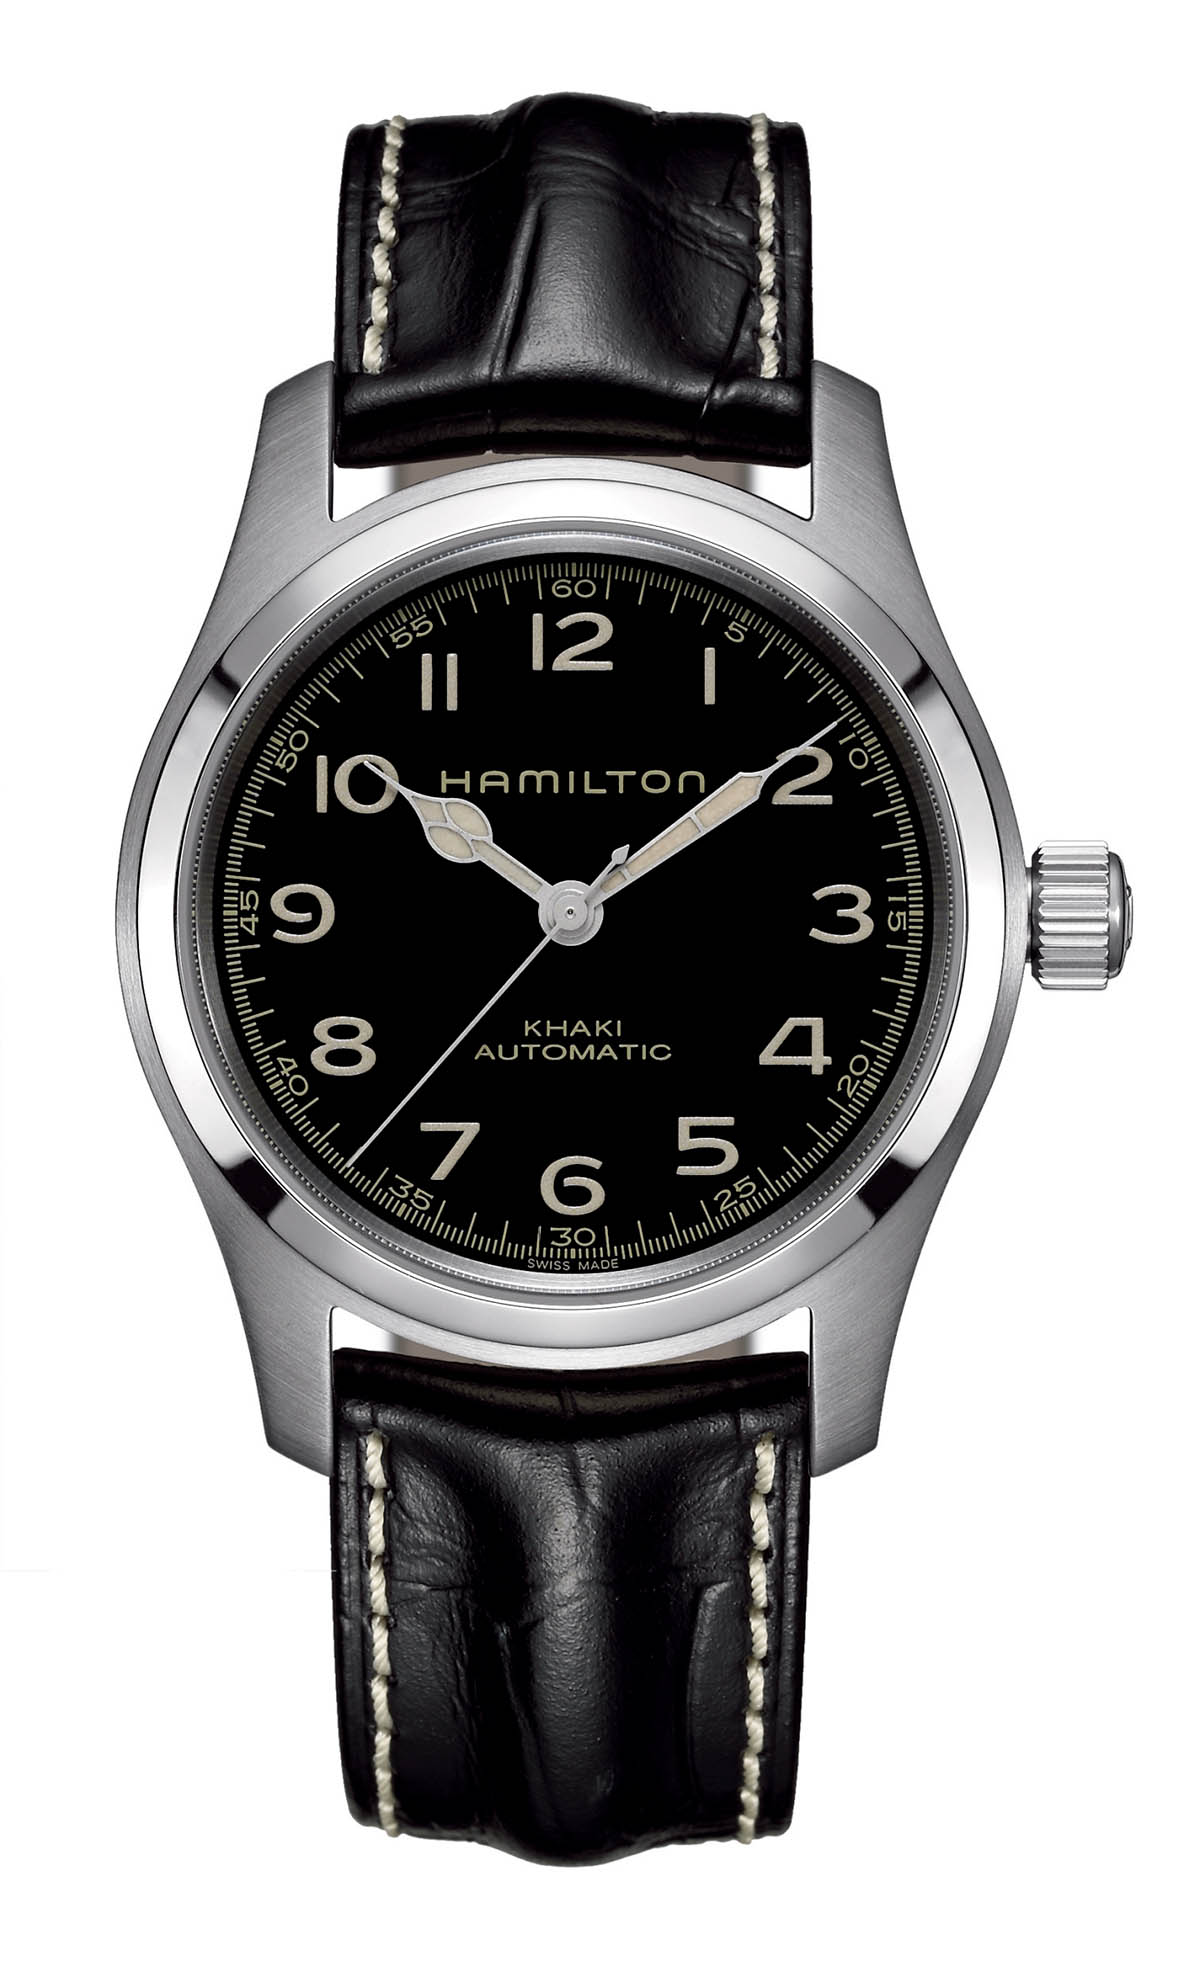 The special edition of the Hamilton Khaki worn by Jessica Chastain in Interstellar